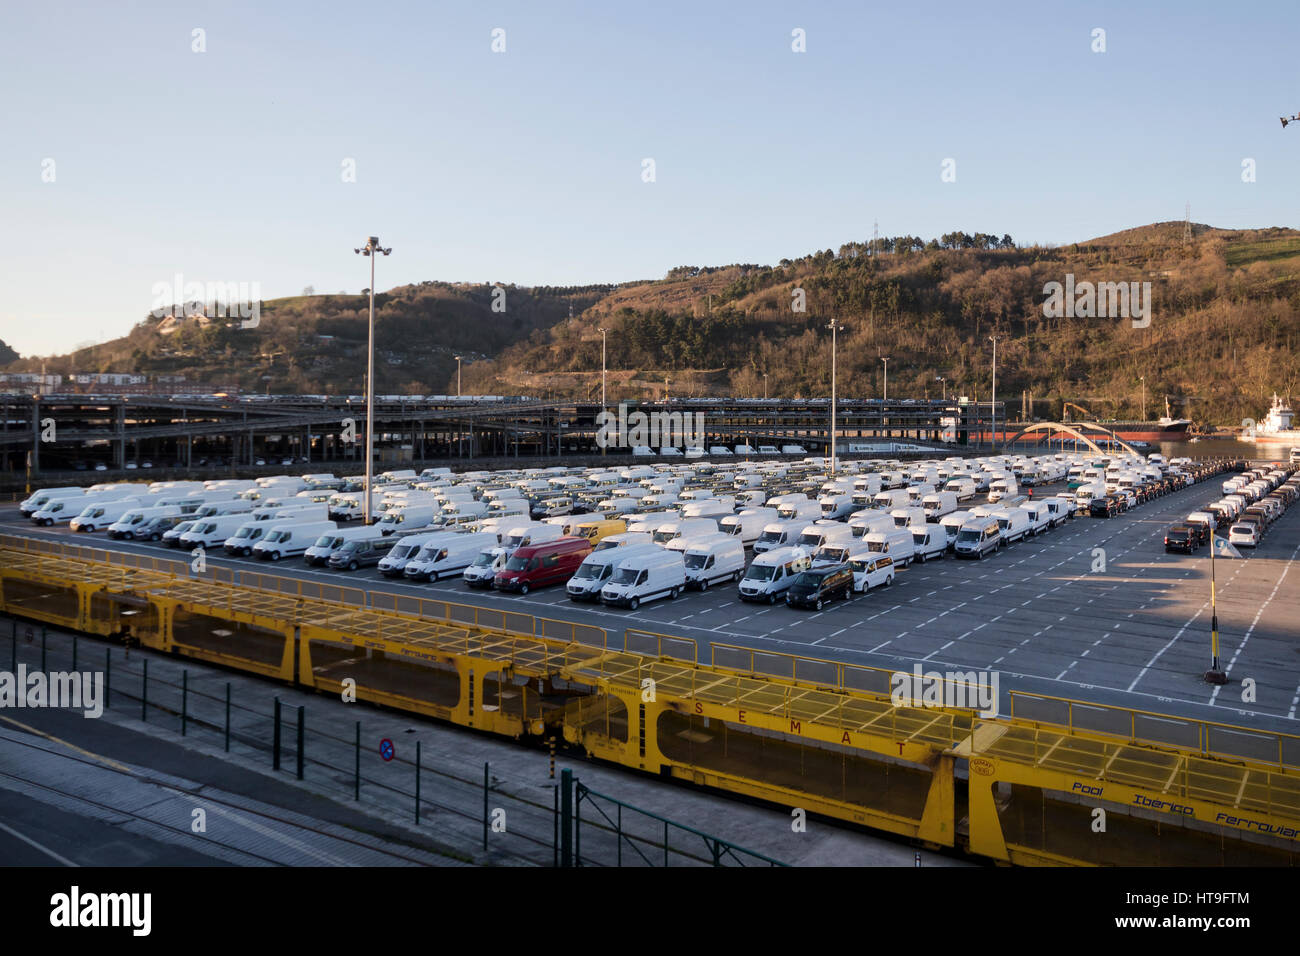 New vans waiting to be shipped at Pasajes seaport (Basque country, Spain) 2017. - Stock Image